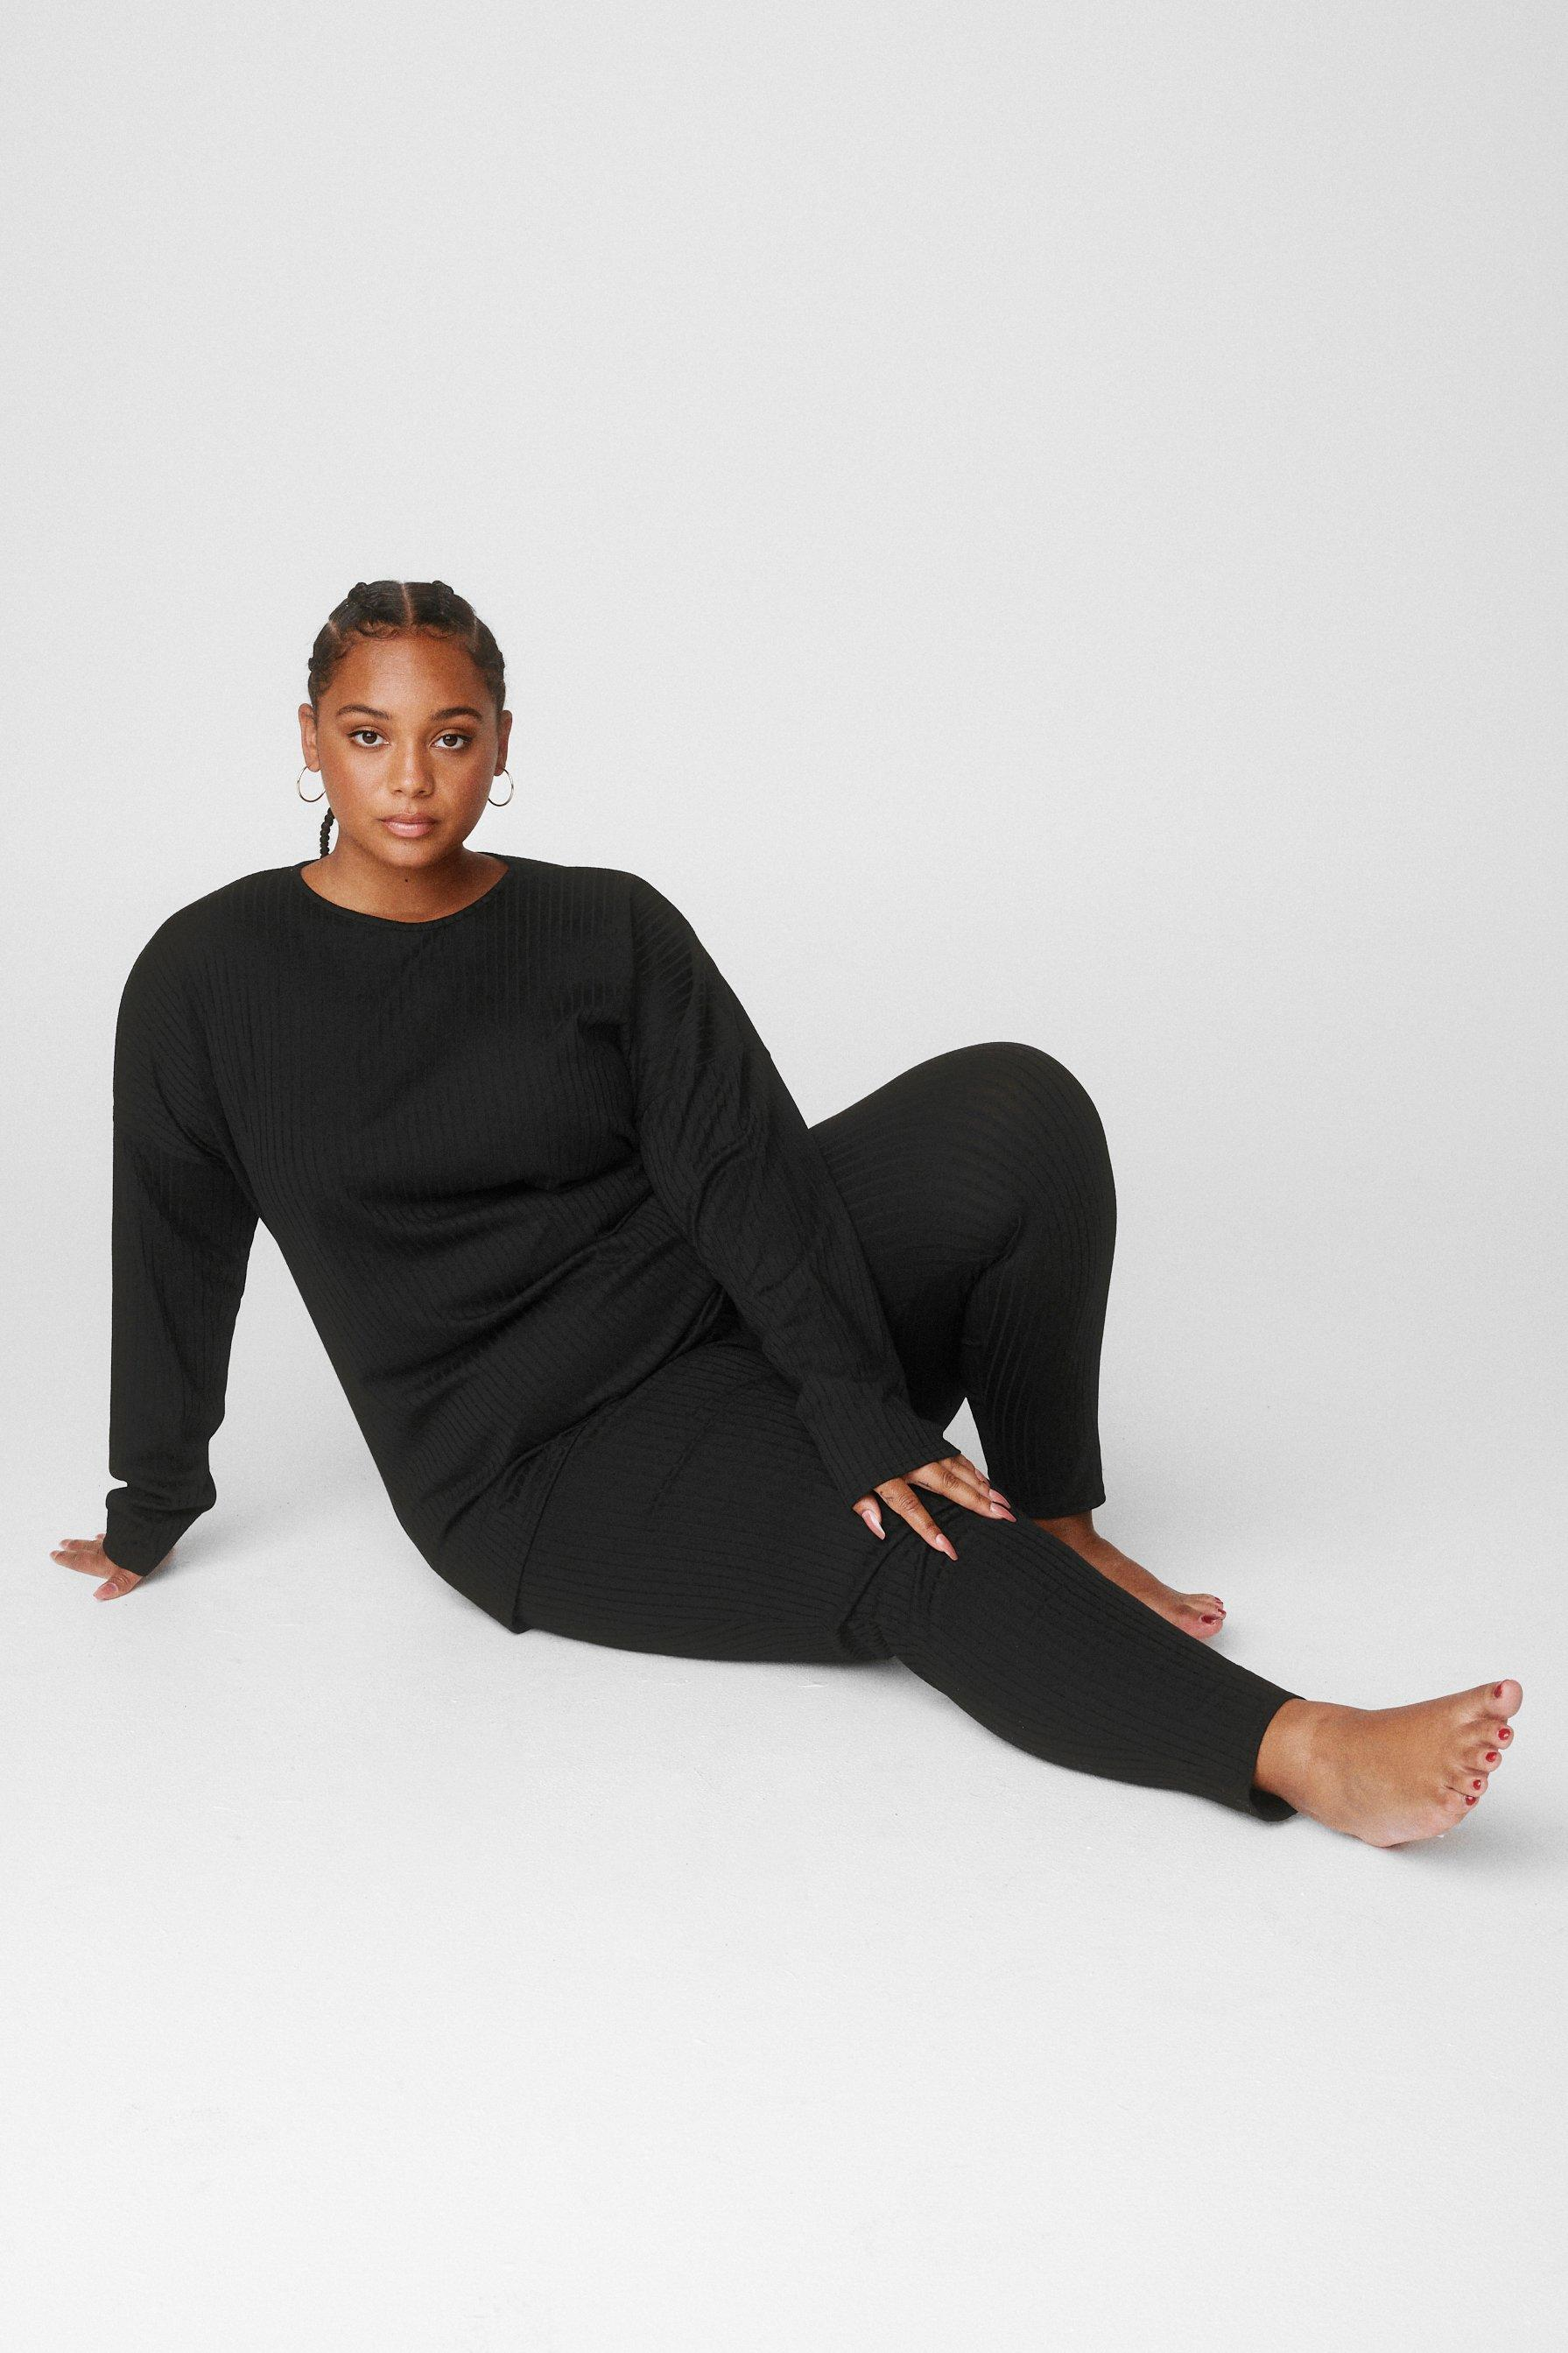 The Long and Leggings of It Plus Lounge Set 4